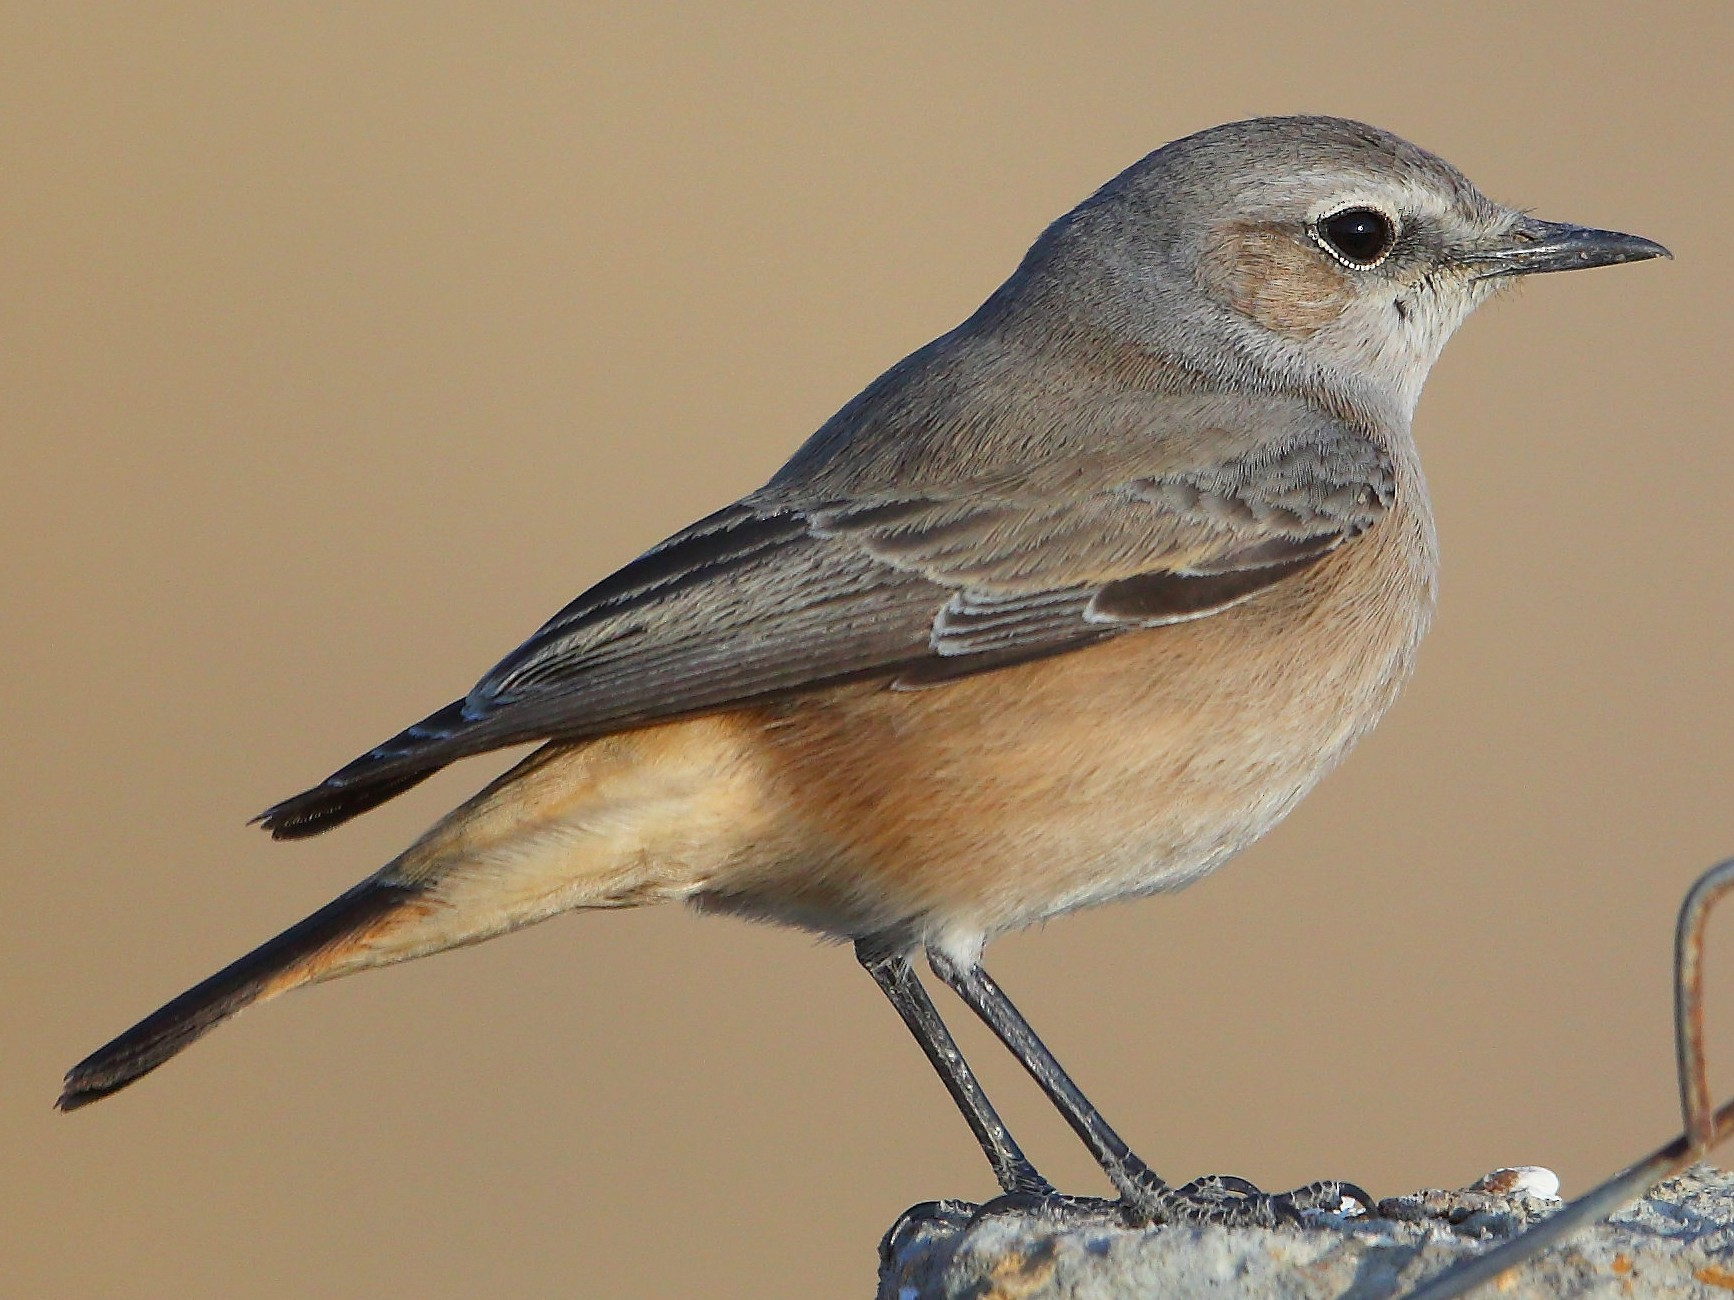 Persian Wheatear - Albin Jacob